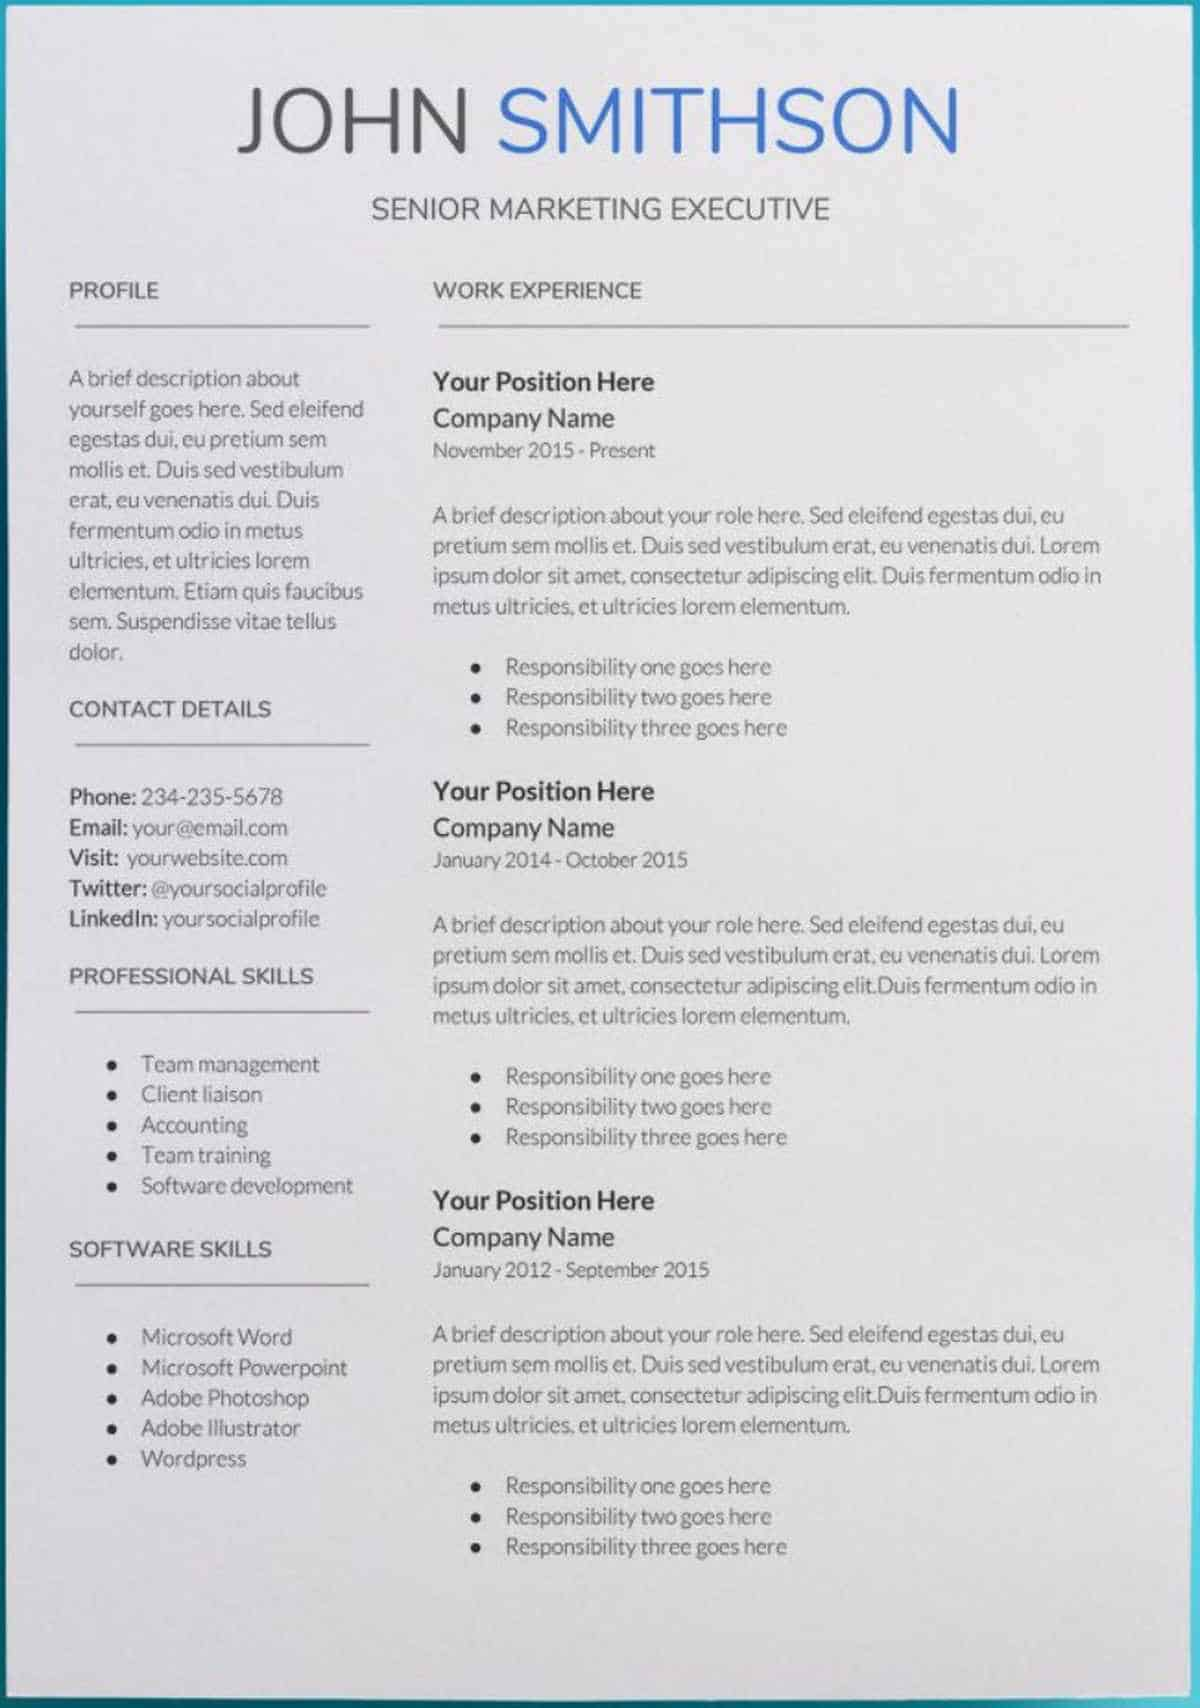 google docs resume templates downloadable pdfs chronological template saturn free most Resume Chronological Resume Template Google Docs